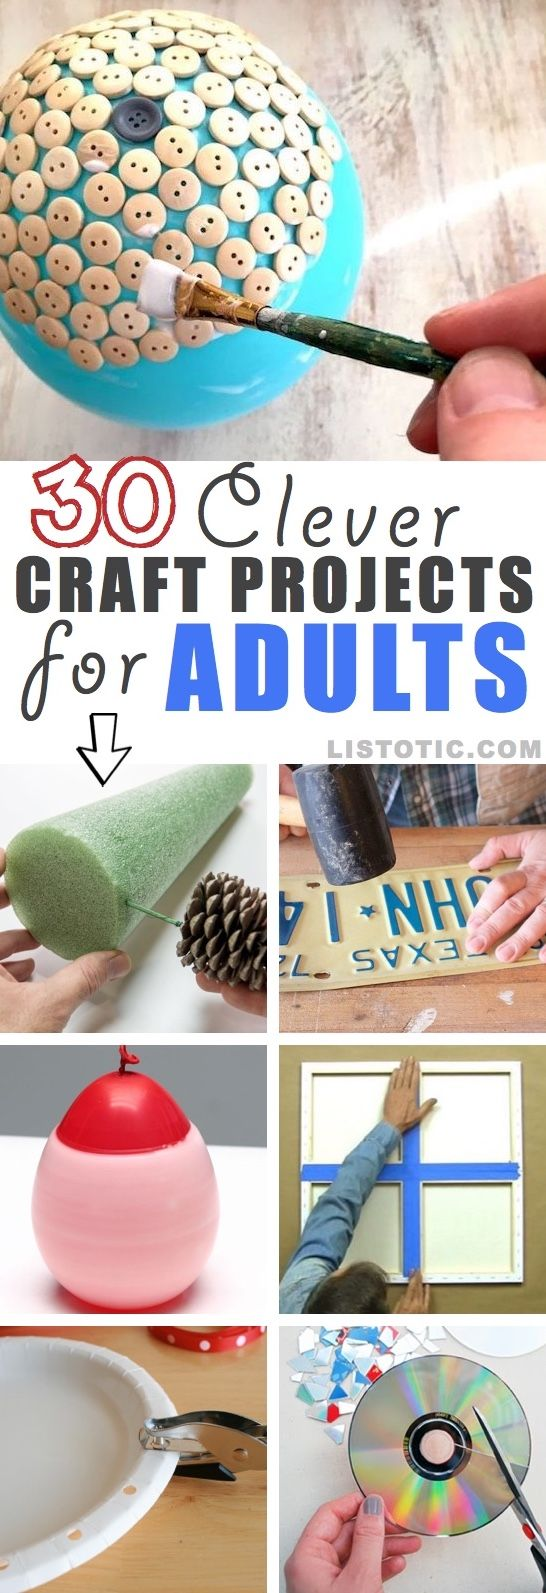 53799 Best Everything Diy Images On Pinterest